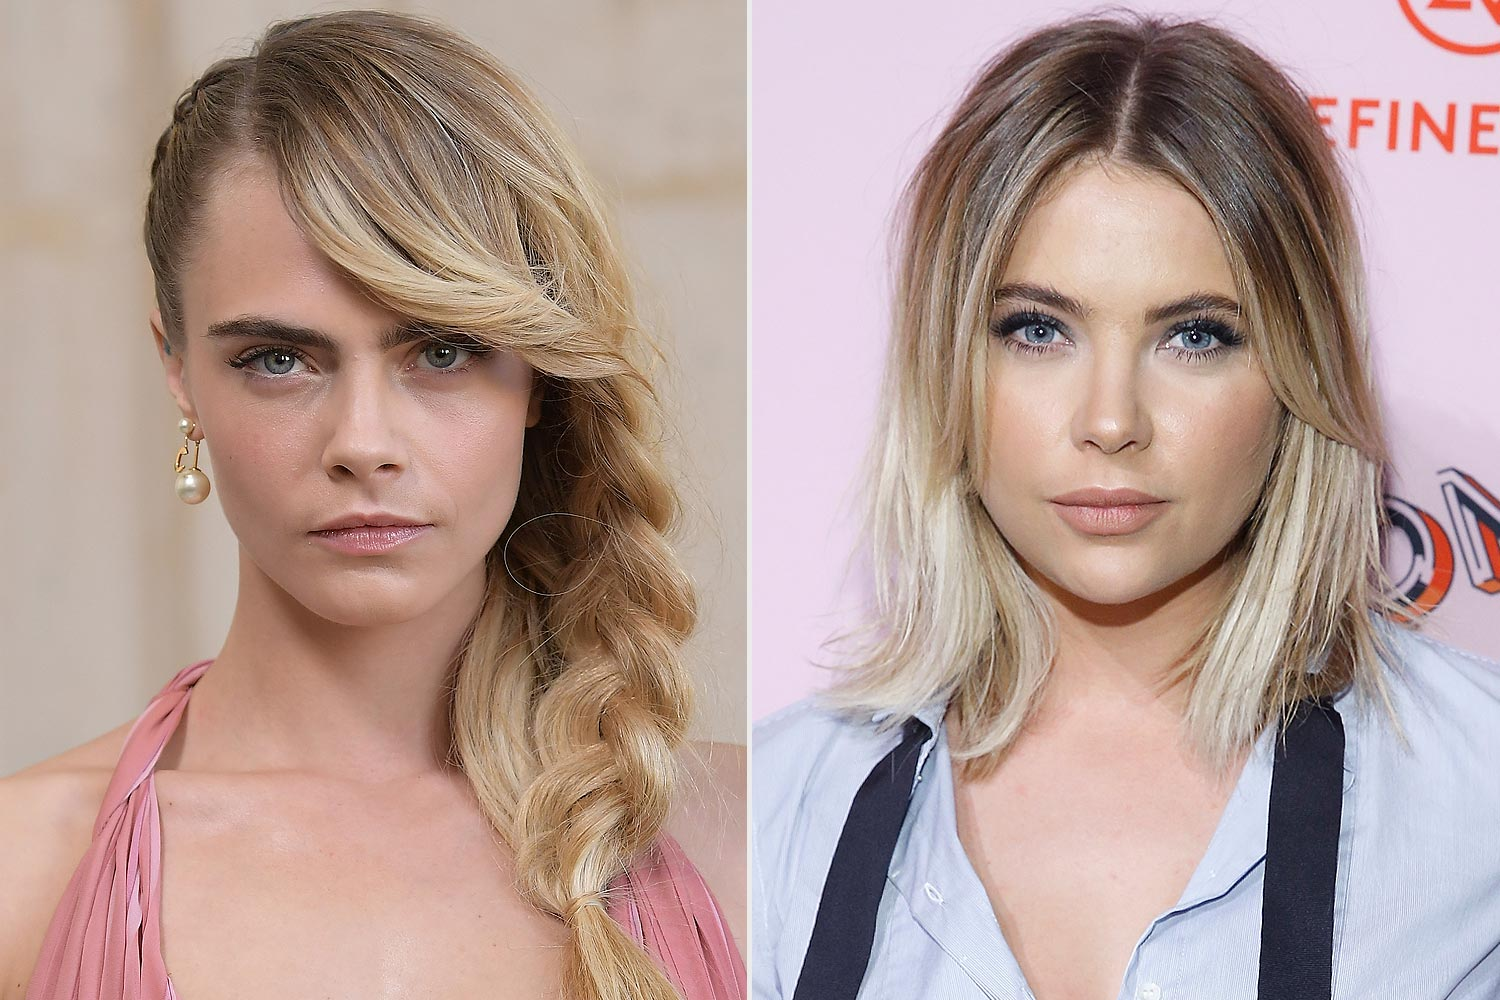 Cara Delevingne And Ashley Benson Split After Nearly Two Years Of